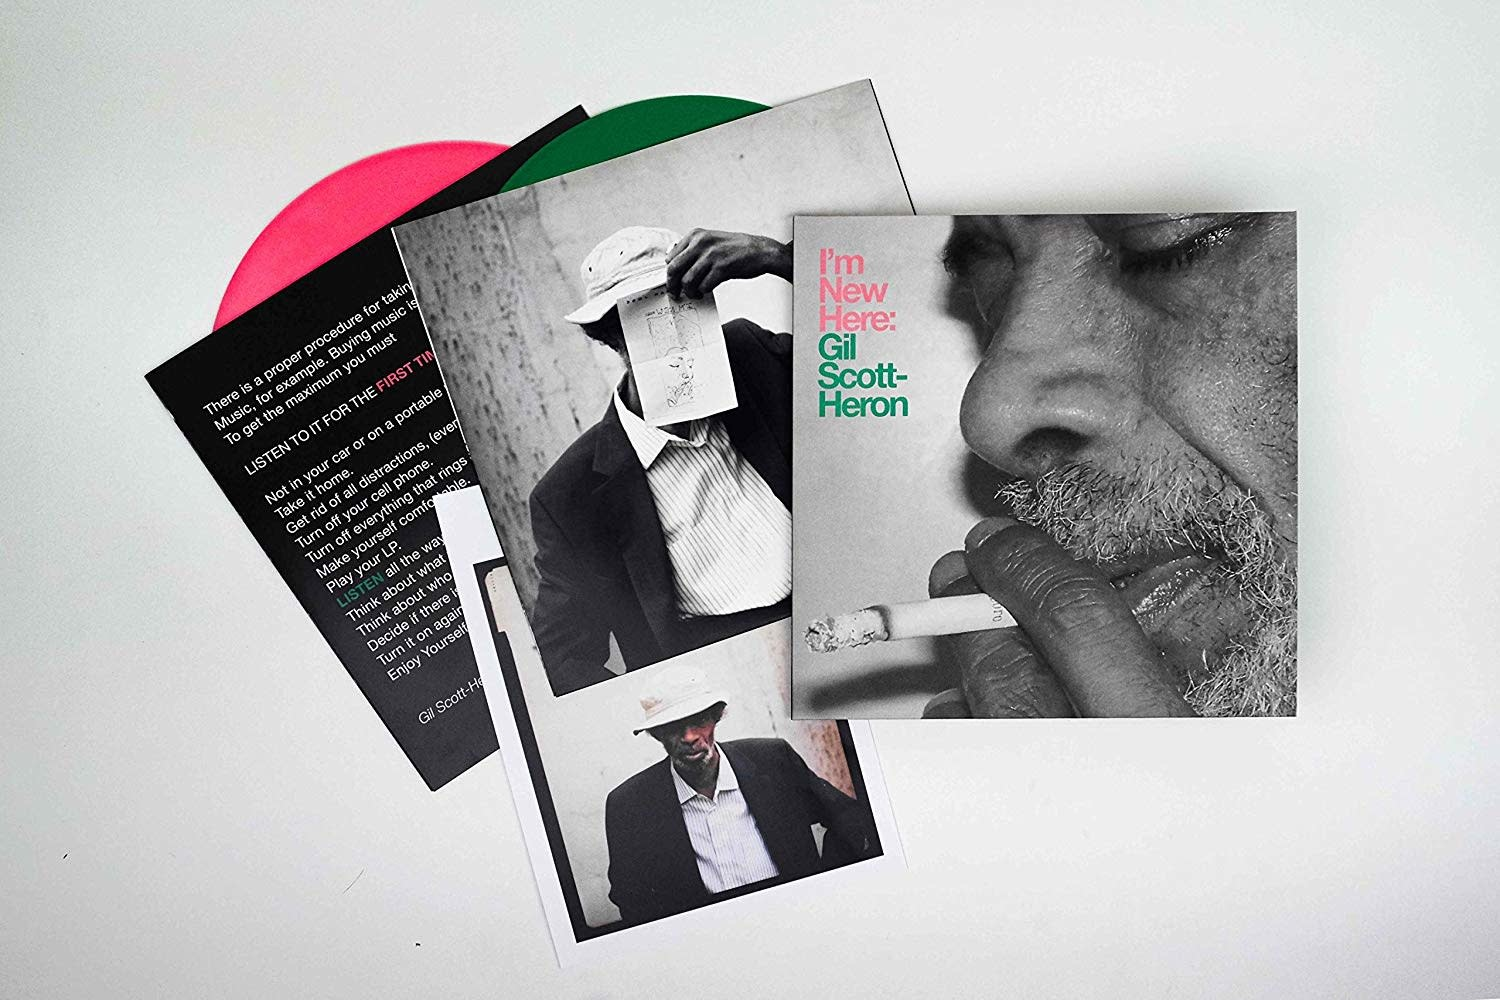 Gil Scott-Heron ‎– I'm New Here (10th Anniversary Expanded Edition)